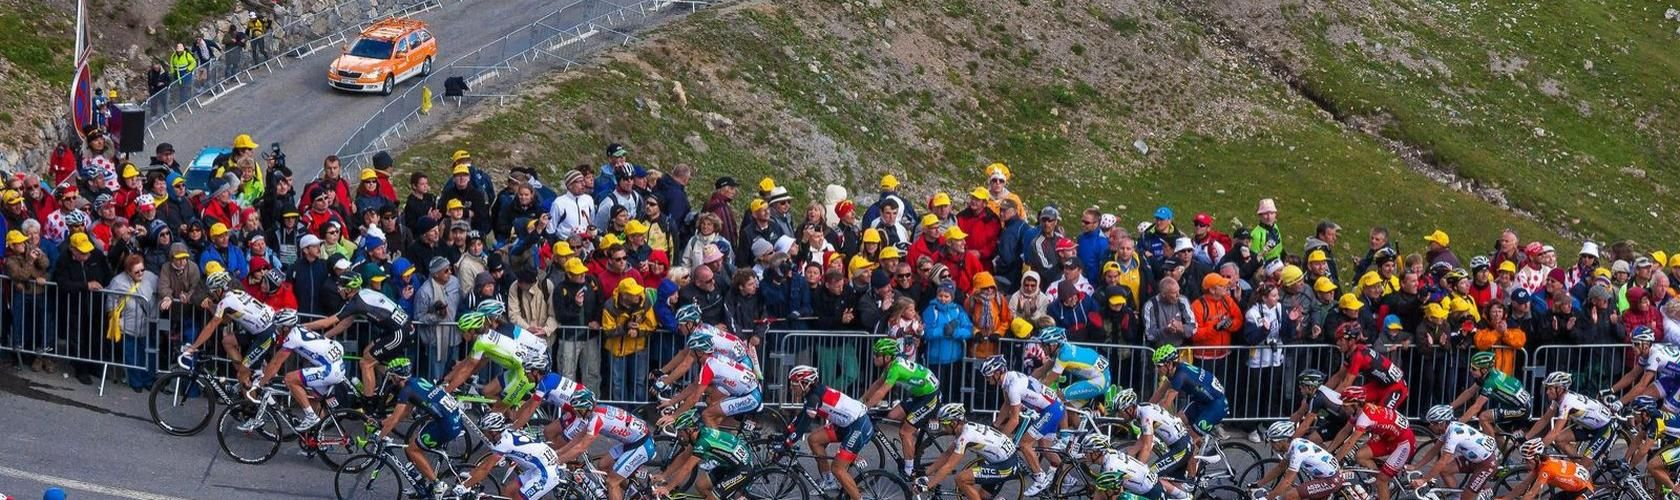 The 2019 Tour de France in the Hautes-Alpes